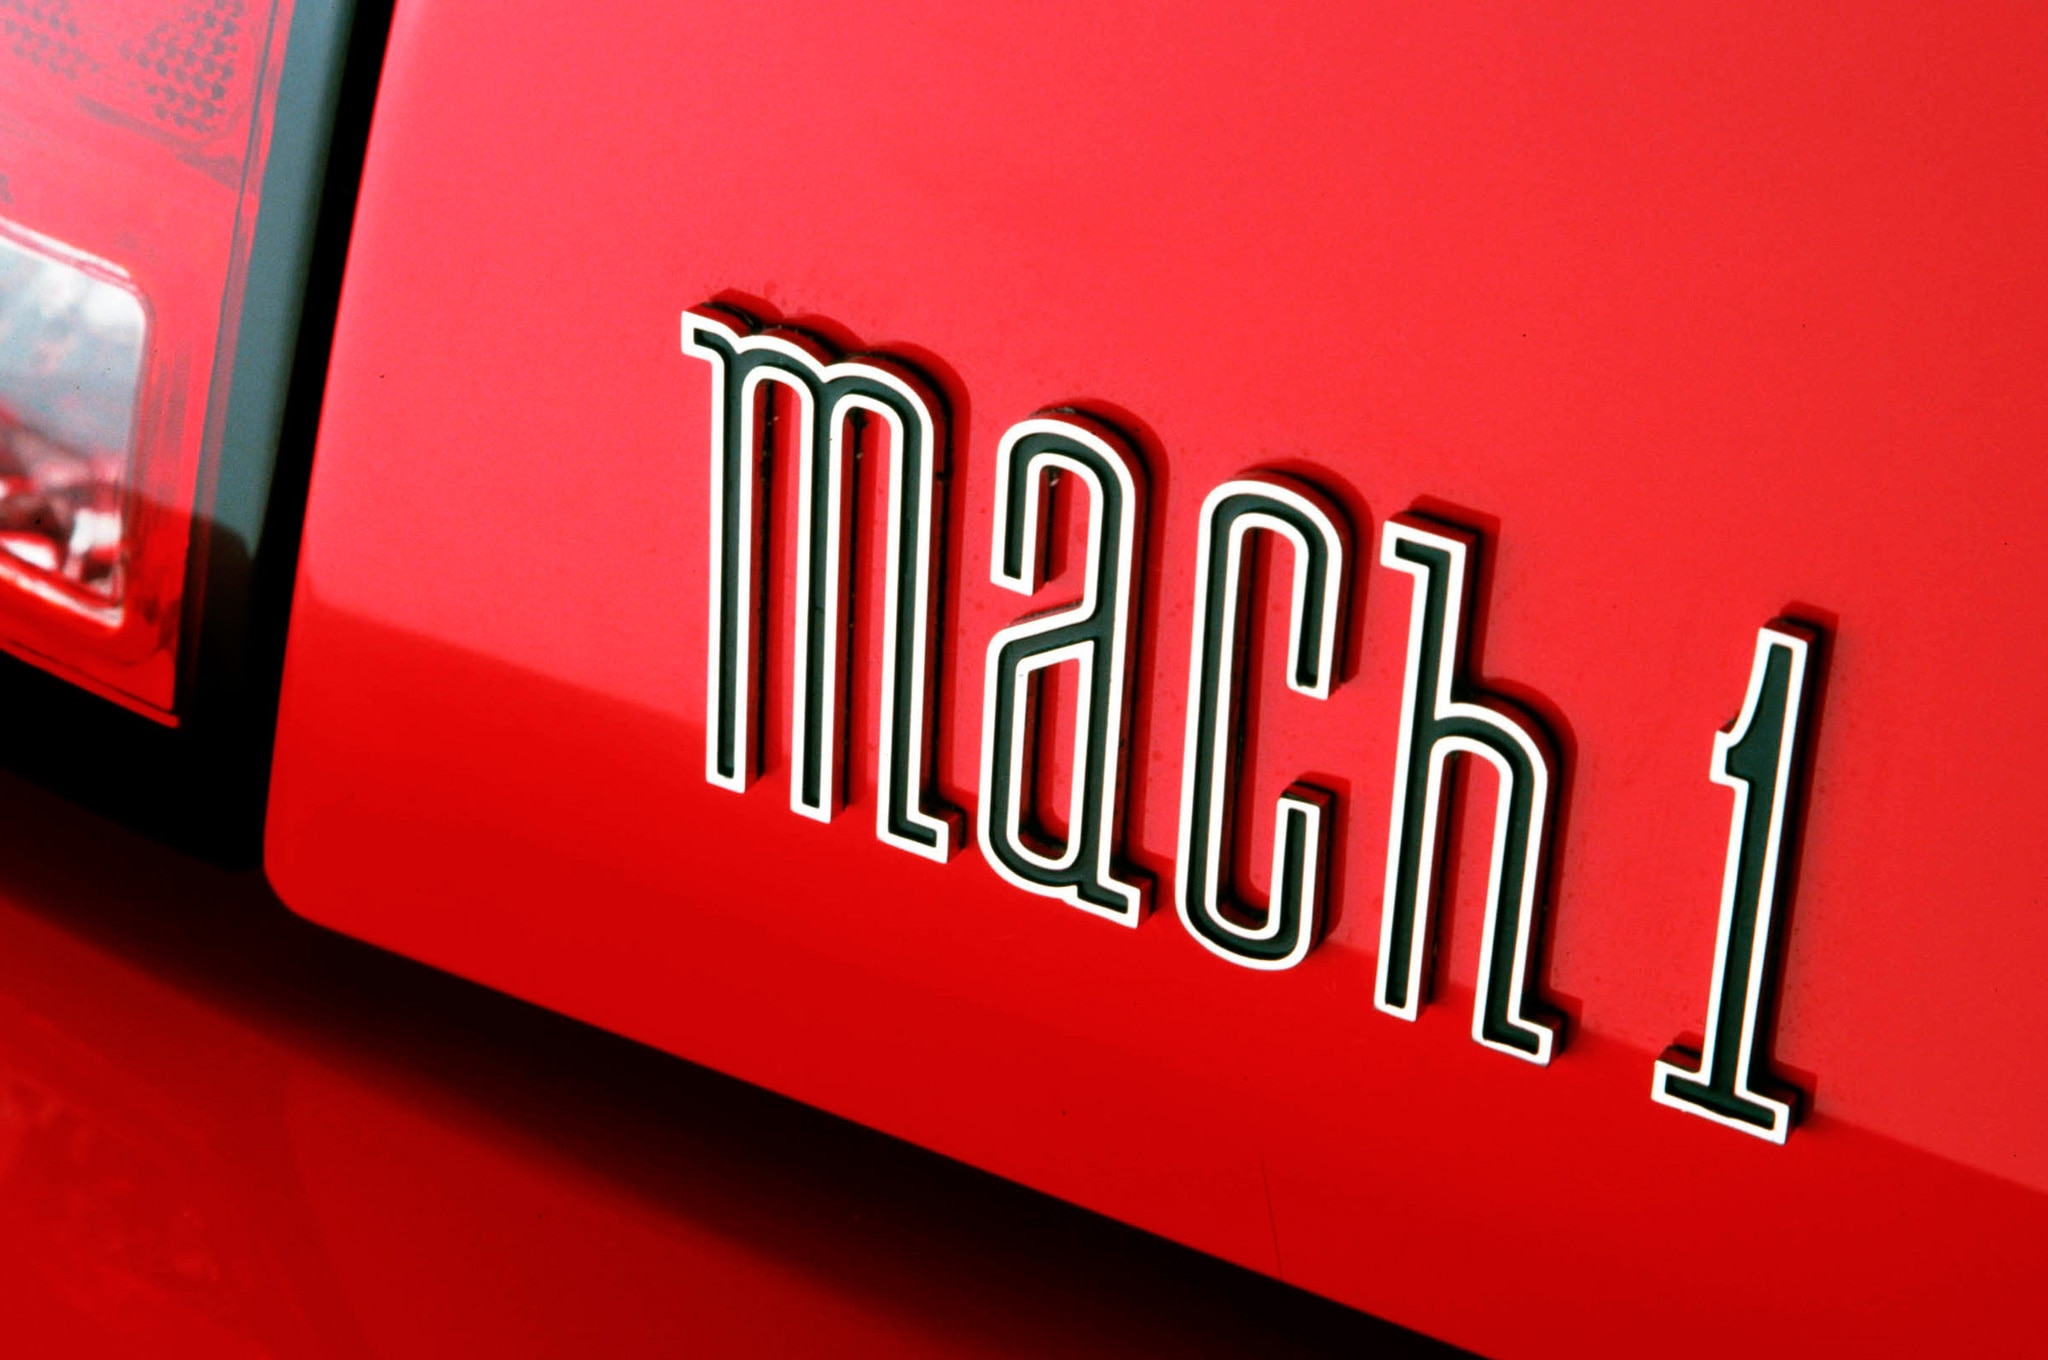 Ford Mustang Mach 1 Emblem View1